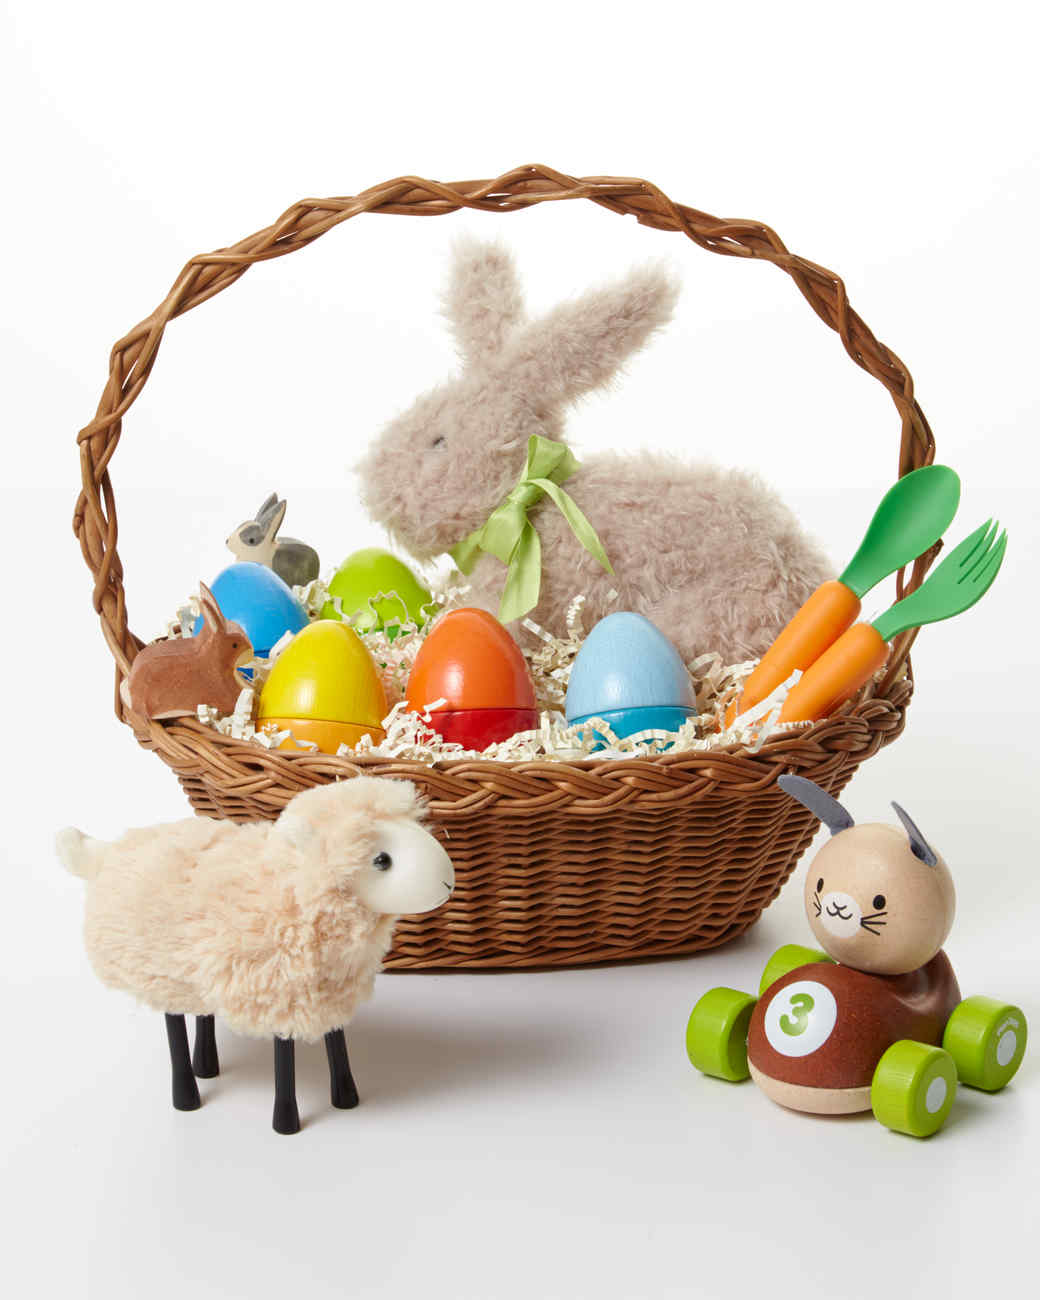 9 adorable easter basket ideas for toddlers martha stewart 9 adorable easter basket ideas for toddlers negle Image collections